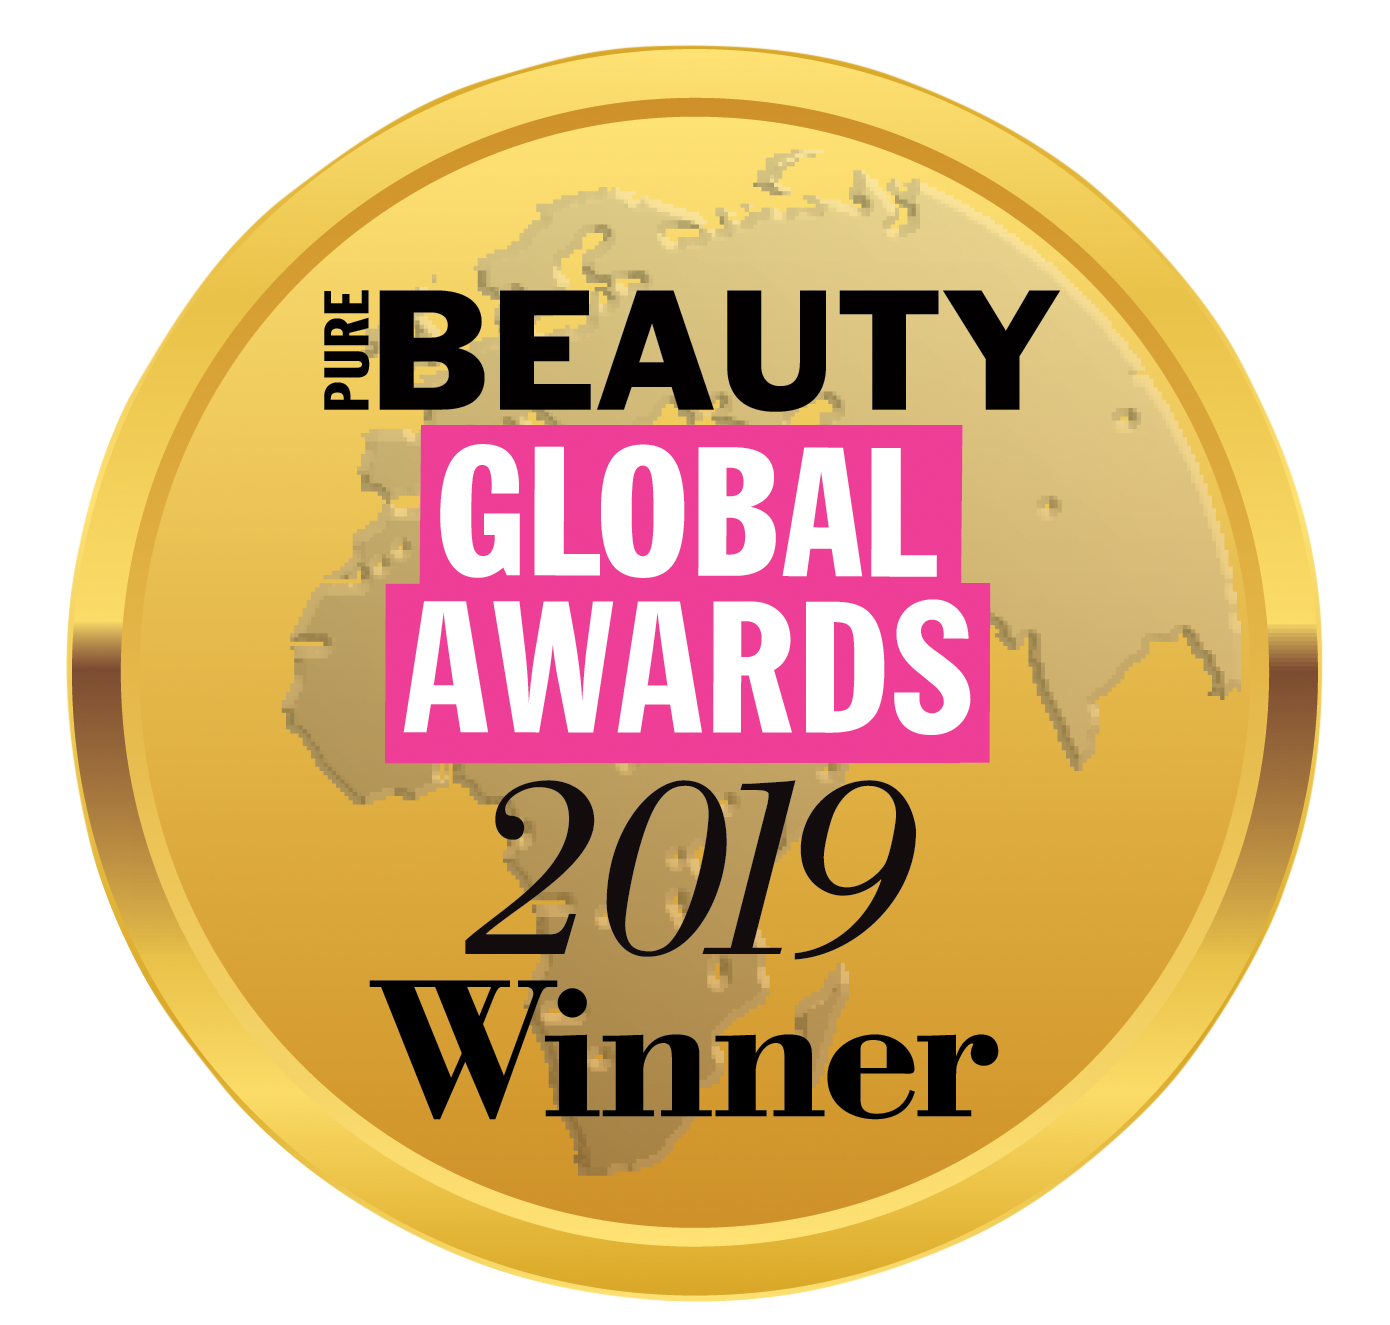 547186_pb_global_awards_gold_2019.png